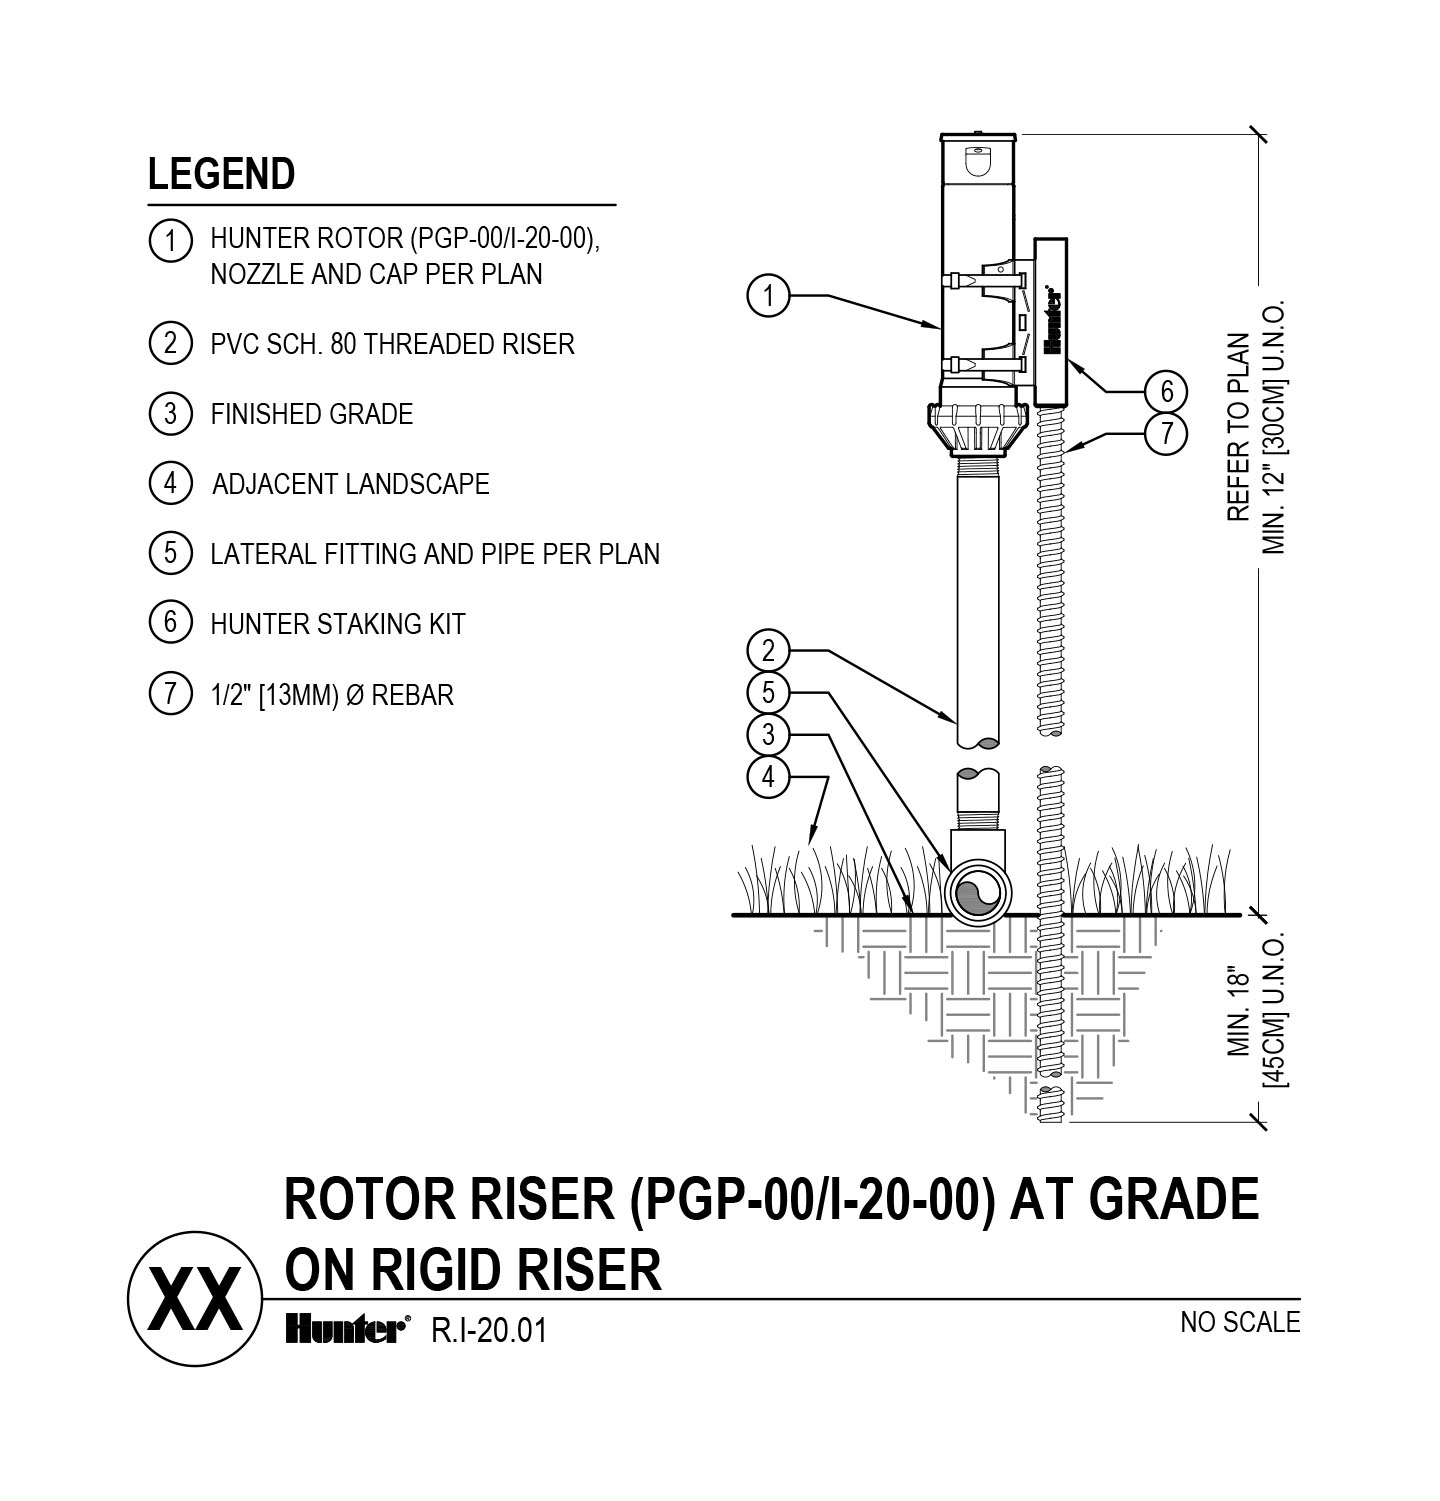 CAD - I-20-00 PGP-00 on grade with rigid riser